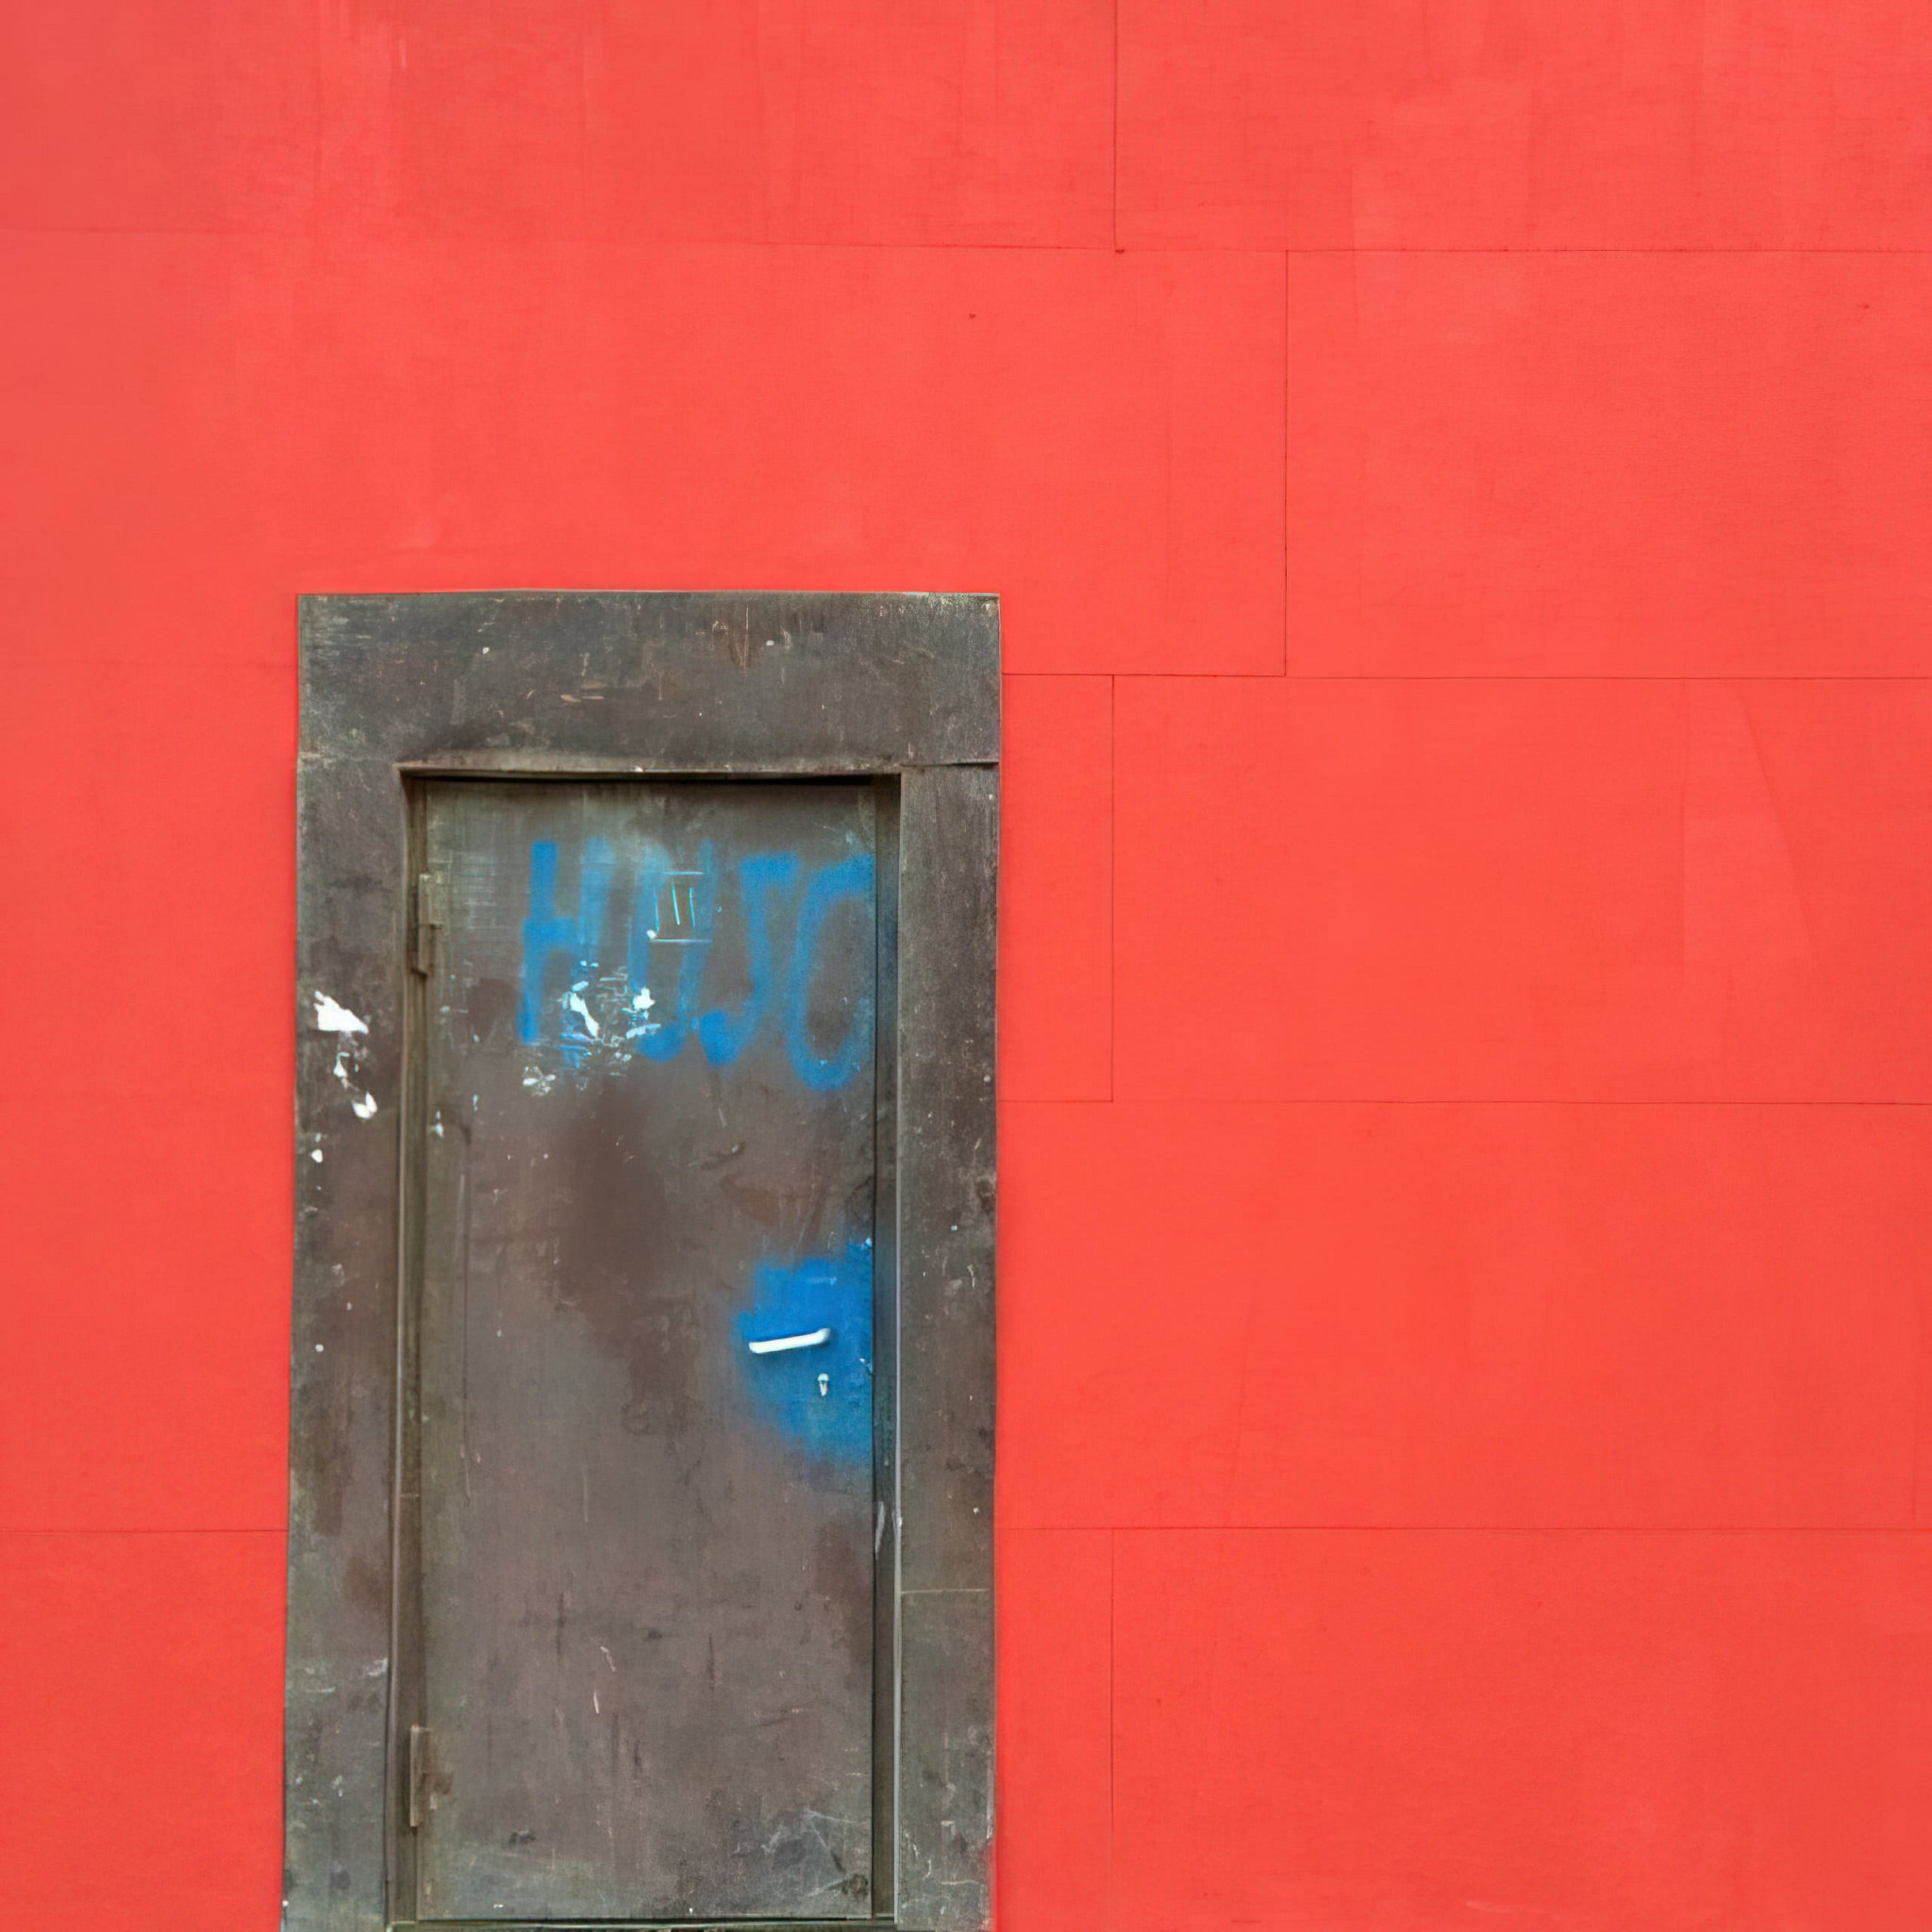 What's behind the red wall? #nofilter